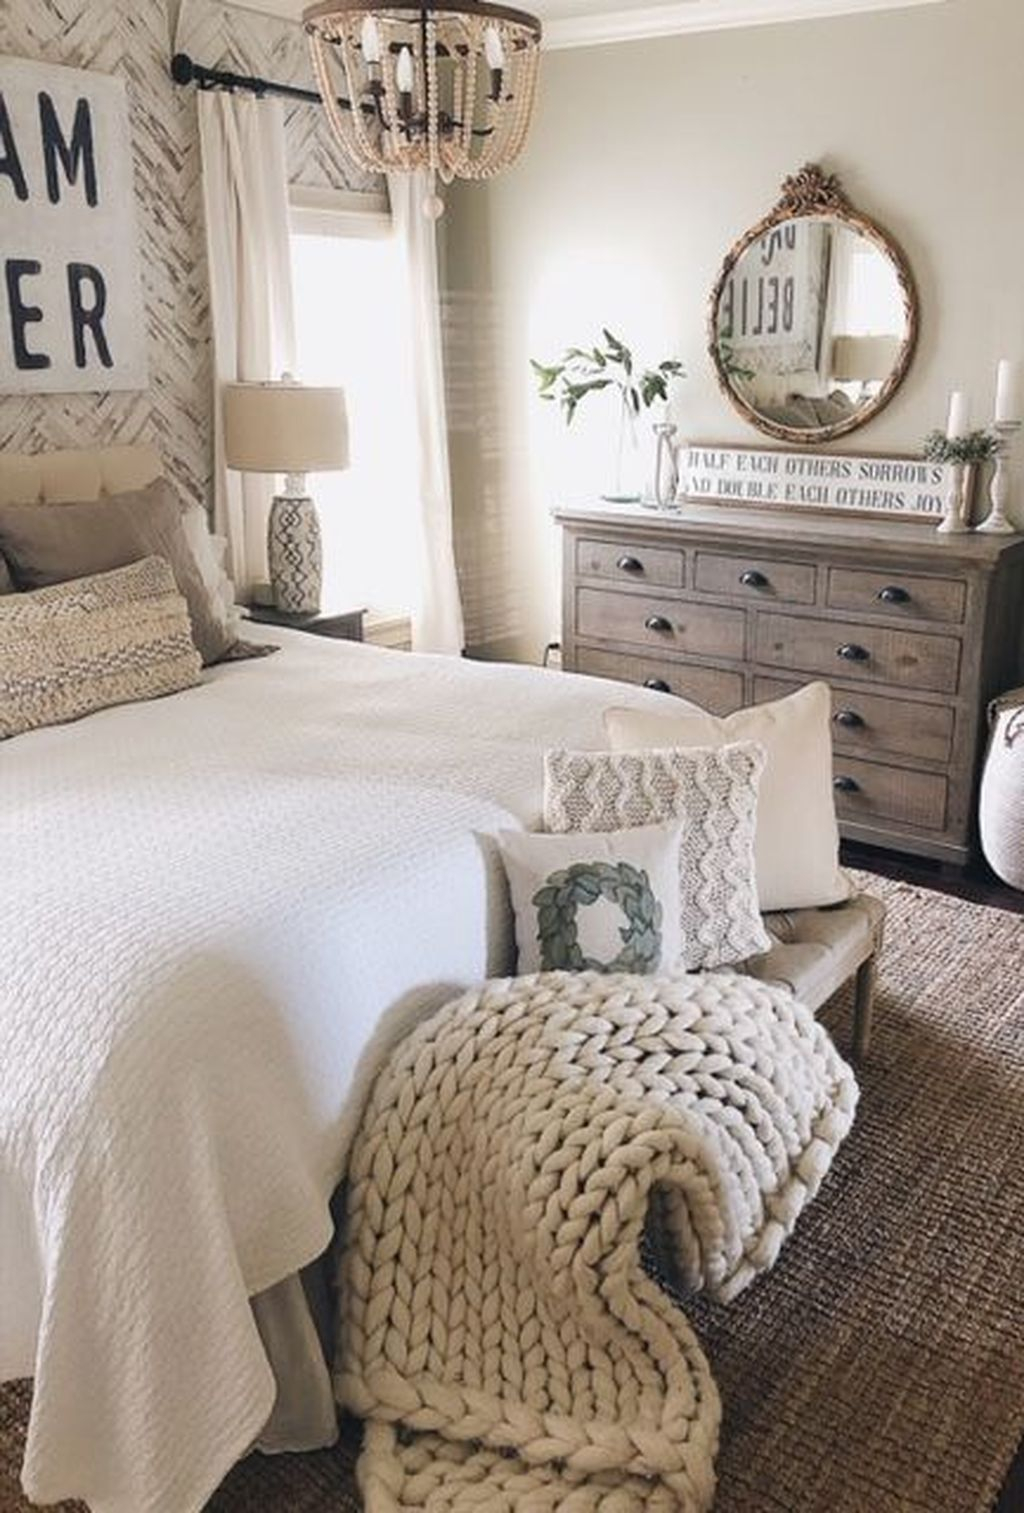 Admiring Bedroom Decor Ideas To Have Right Now 02